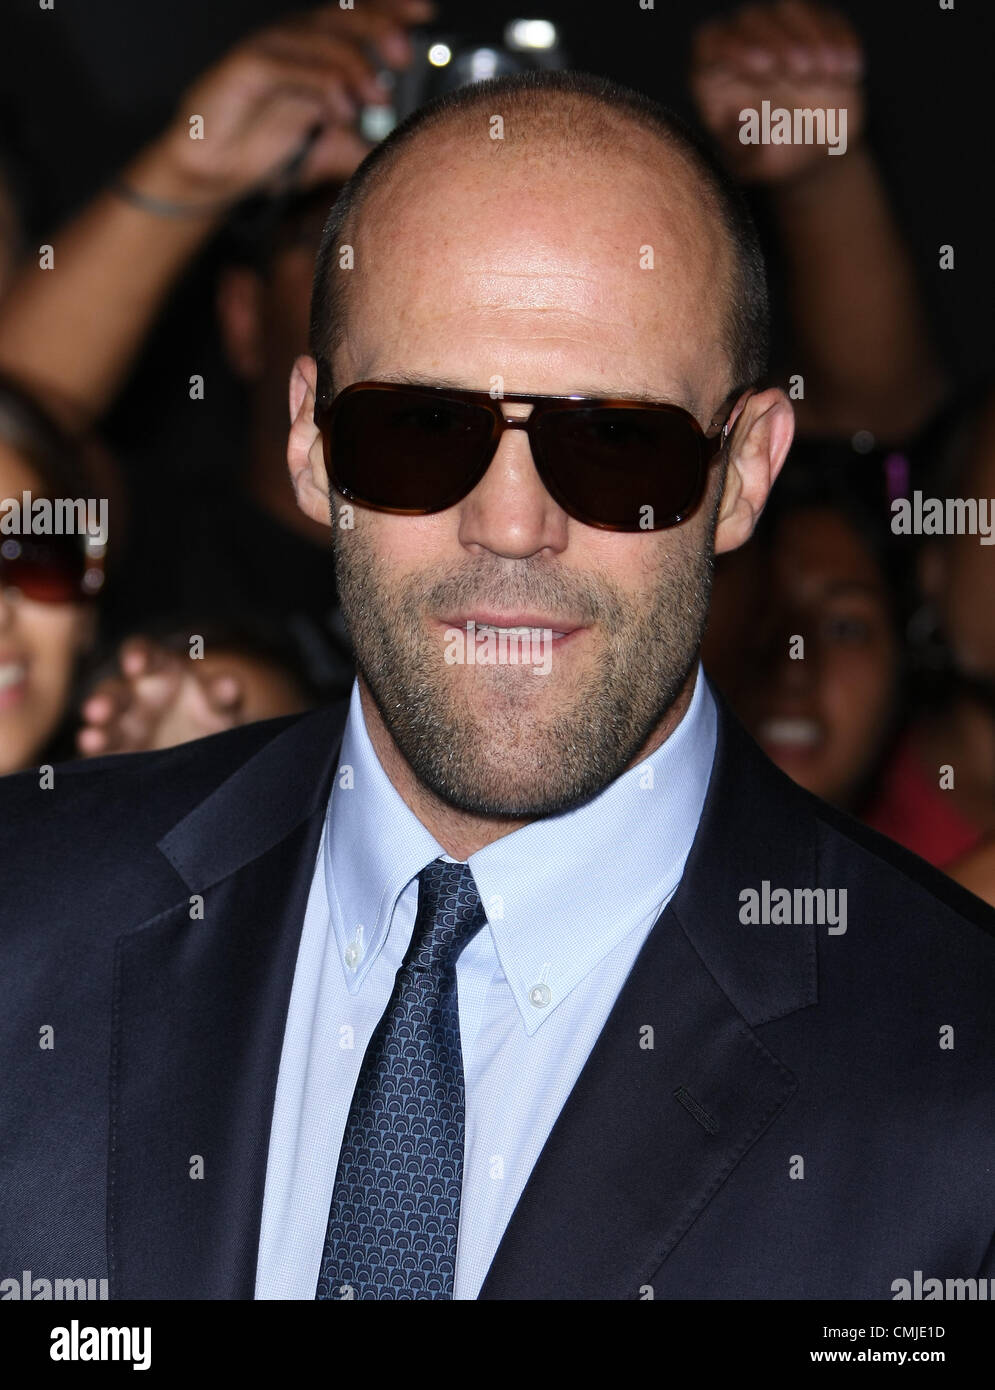 8a8cc0d895e JASON STATHAM EXPENDABLES 2. WORLD PREMIERE HOLLYWOOD LOS ANGELES  CALIFORNIA USA 15 August 2012 -